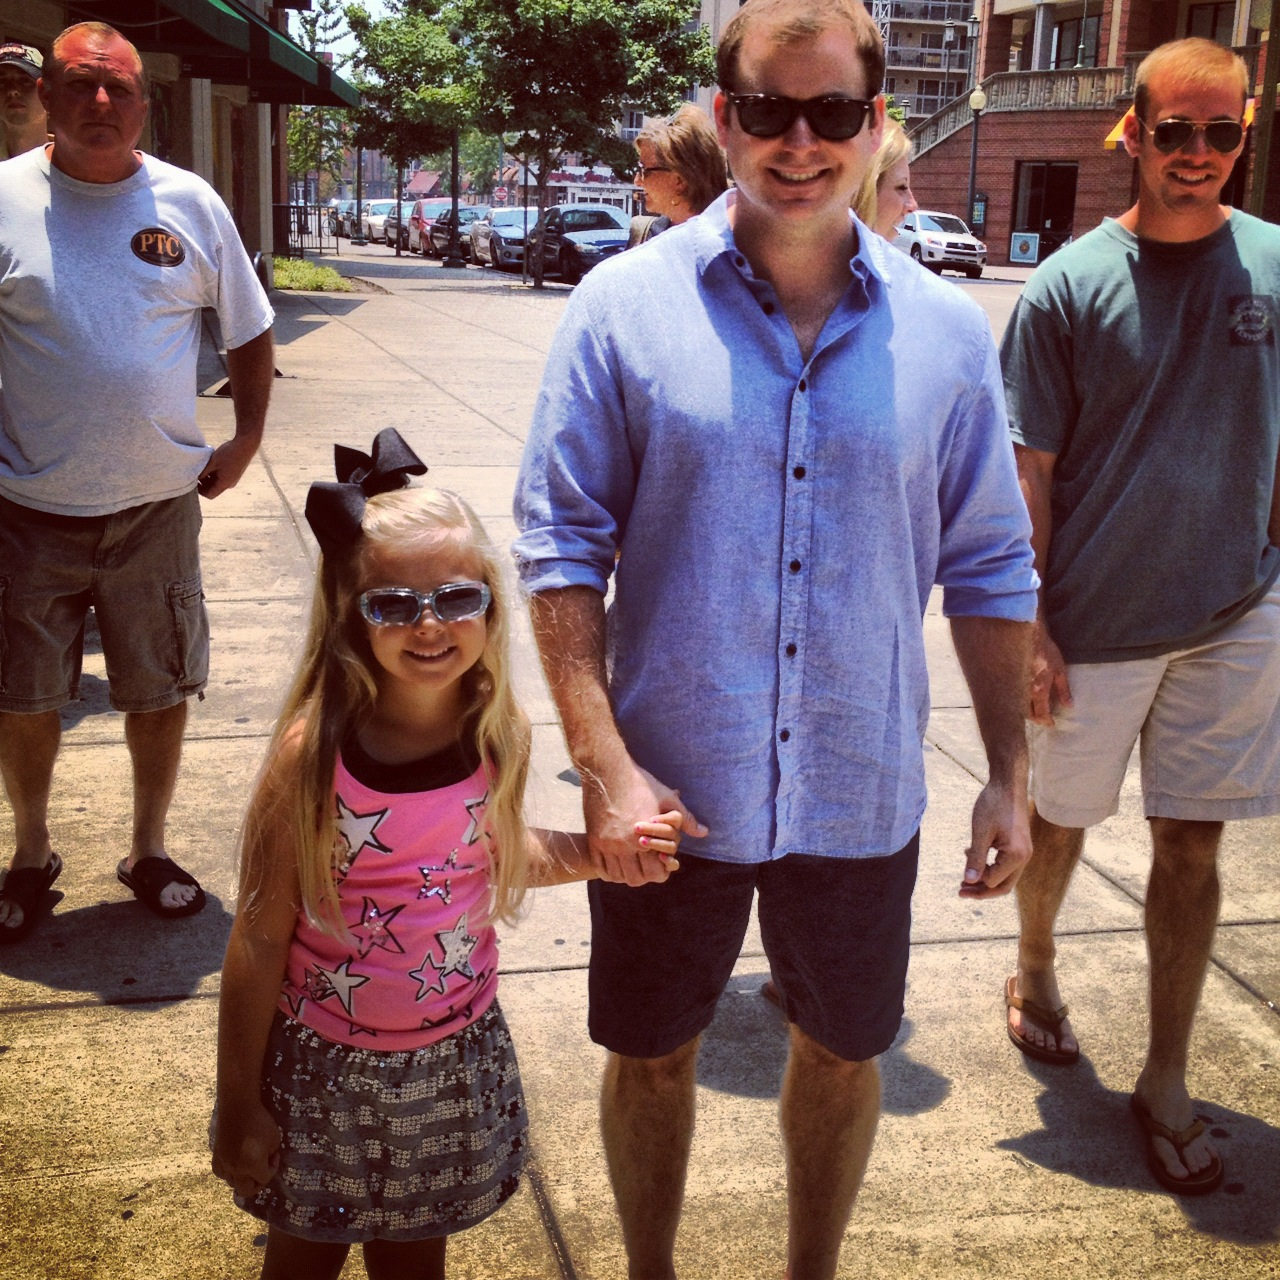 Greg, Eliza, Jonathan and Anthony celebrating Jonathan's birthday in downtown Memphis, July 2012.